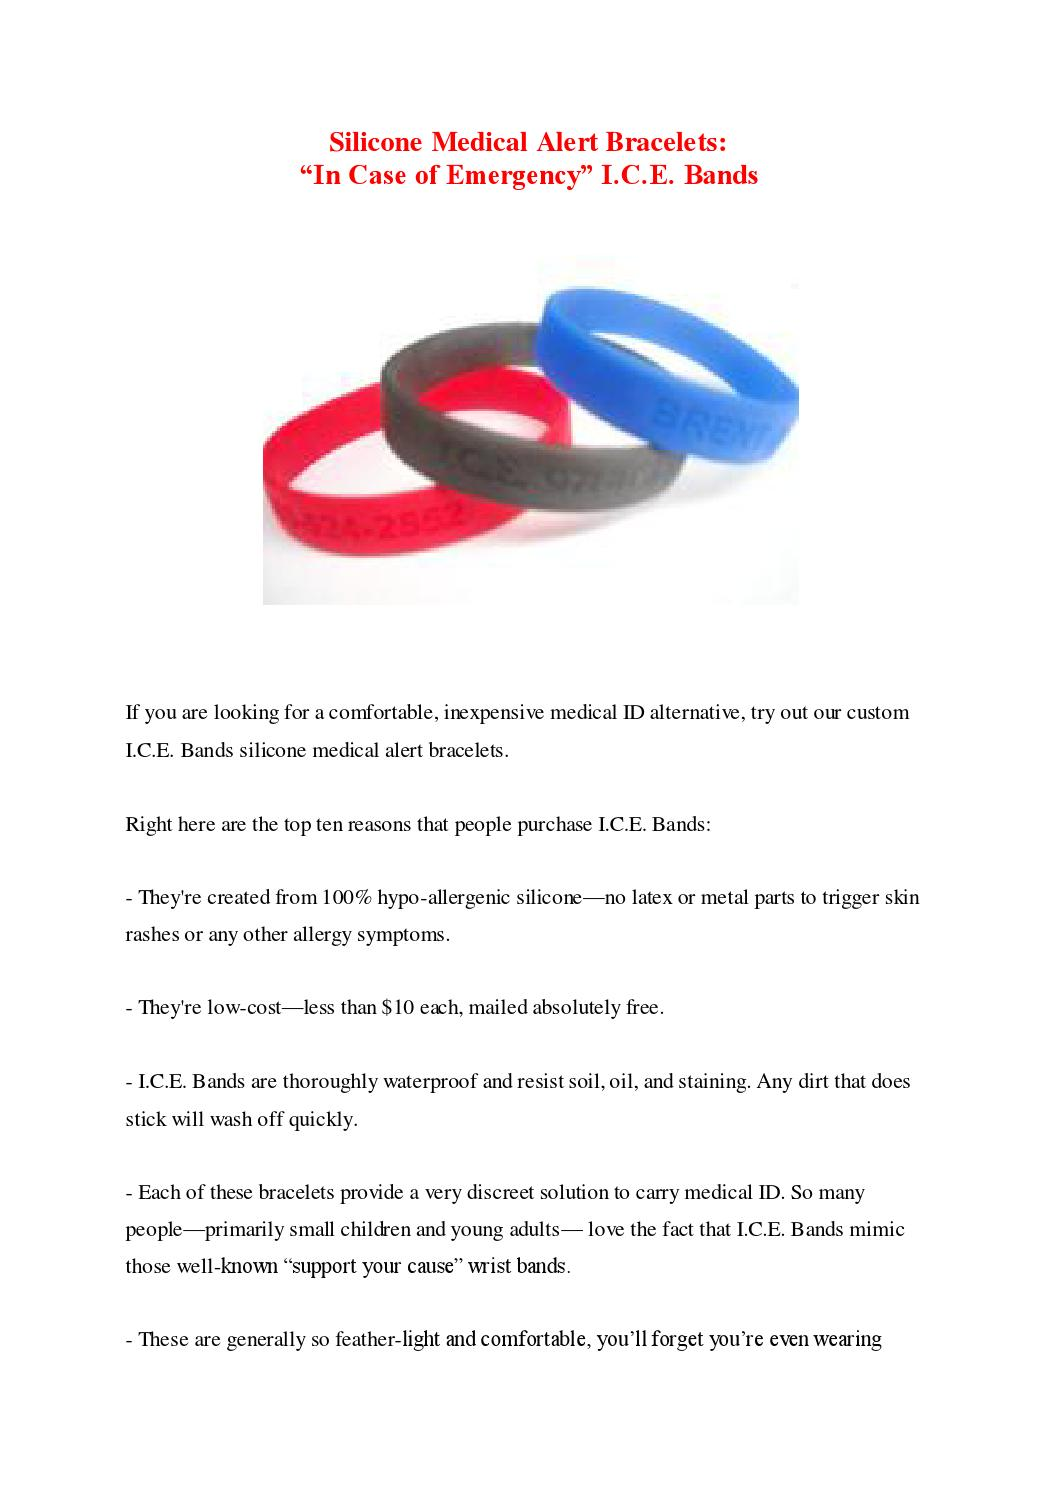 Silicone Medical Alert Bracelets by Sabri Saboura - issuu